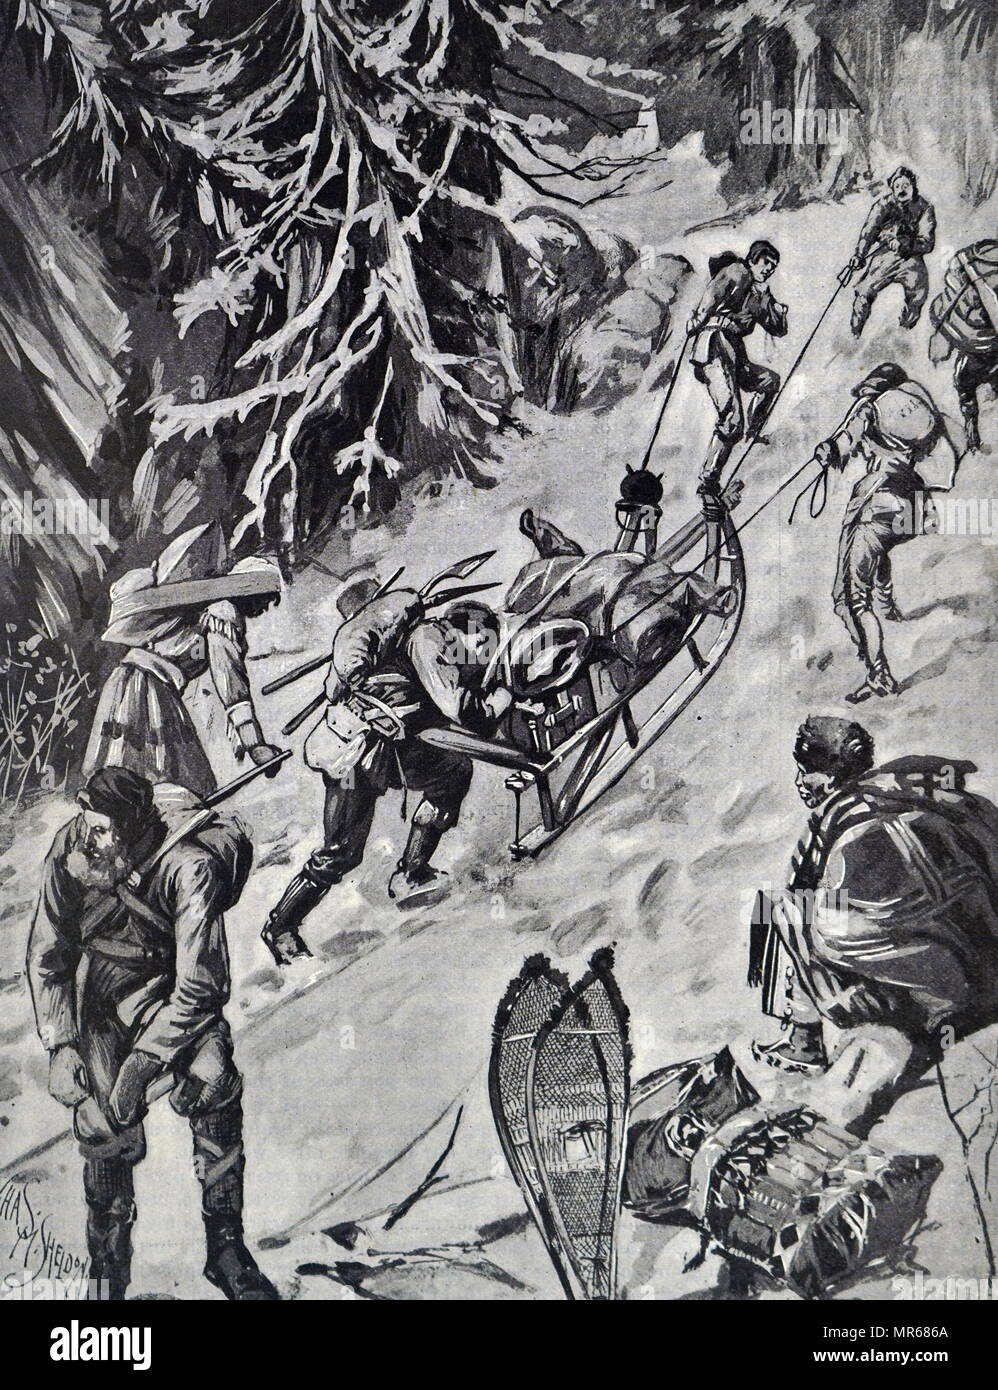 Engraving depicting Klondyke gold digging prospectors transporting their baggage up the arduous Chilkoot Pass, which involved a steep drag of 3,500 ft., and only the strongest and fittest were able to negotiate this route. Dated 19th century - Stock Image